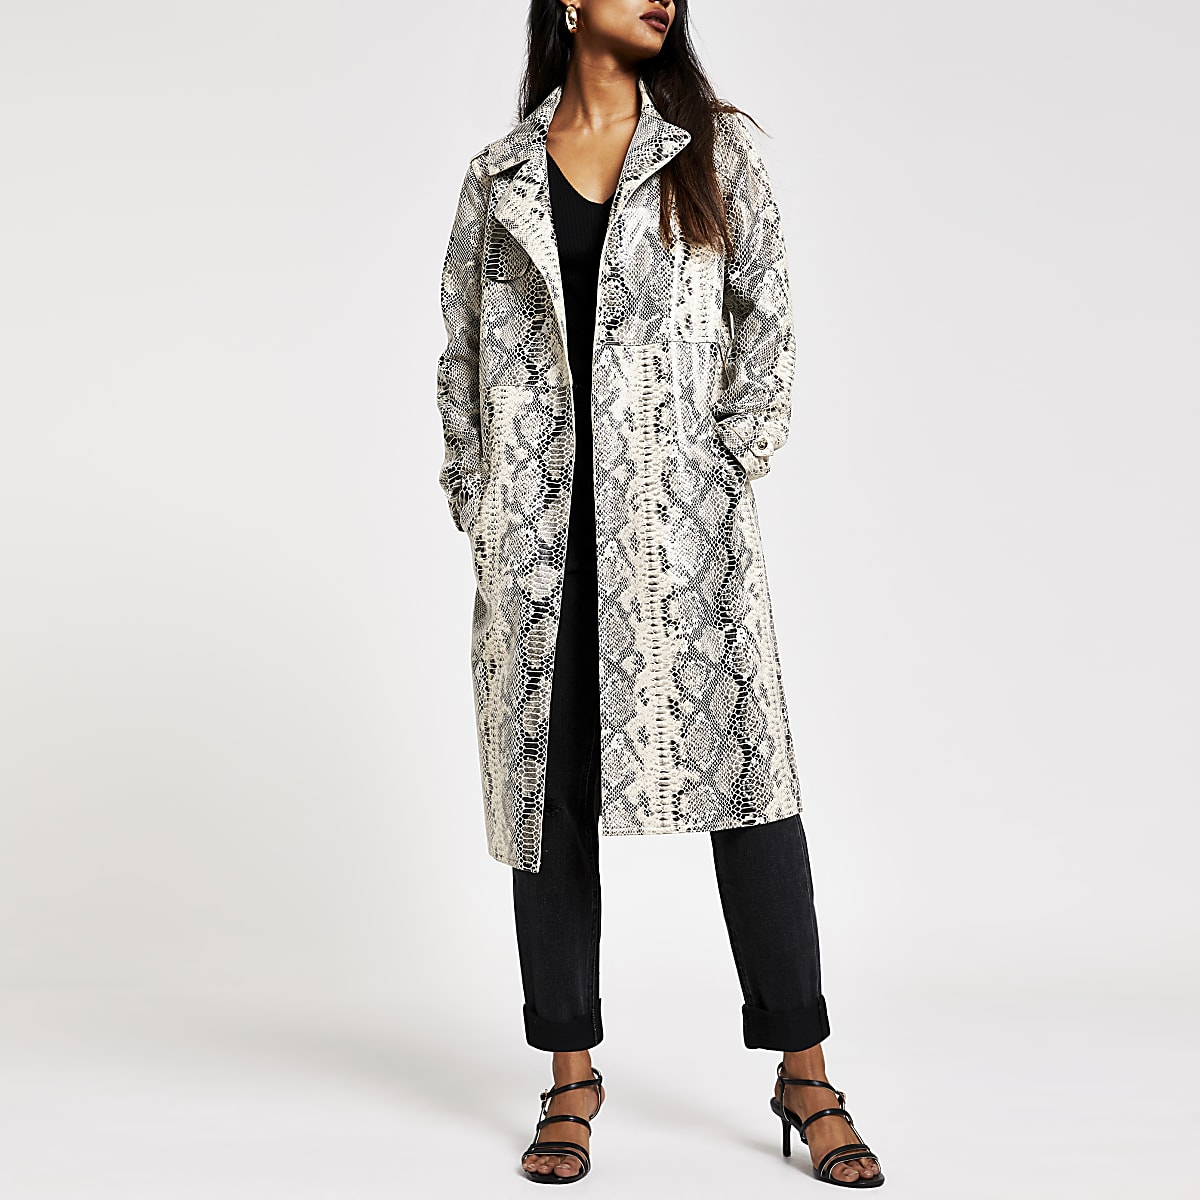 big sale 50% off excellent quality Petite cream snake print patent trench coat